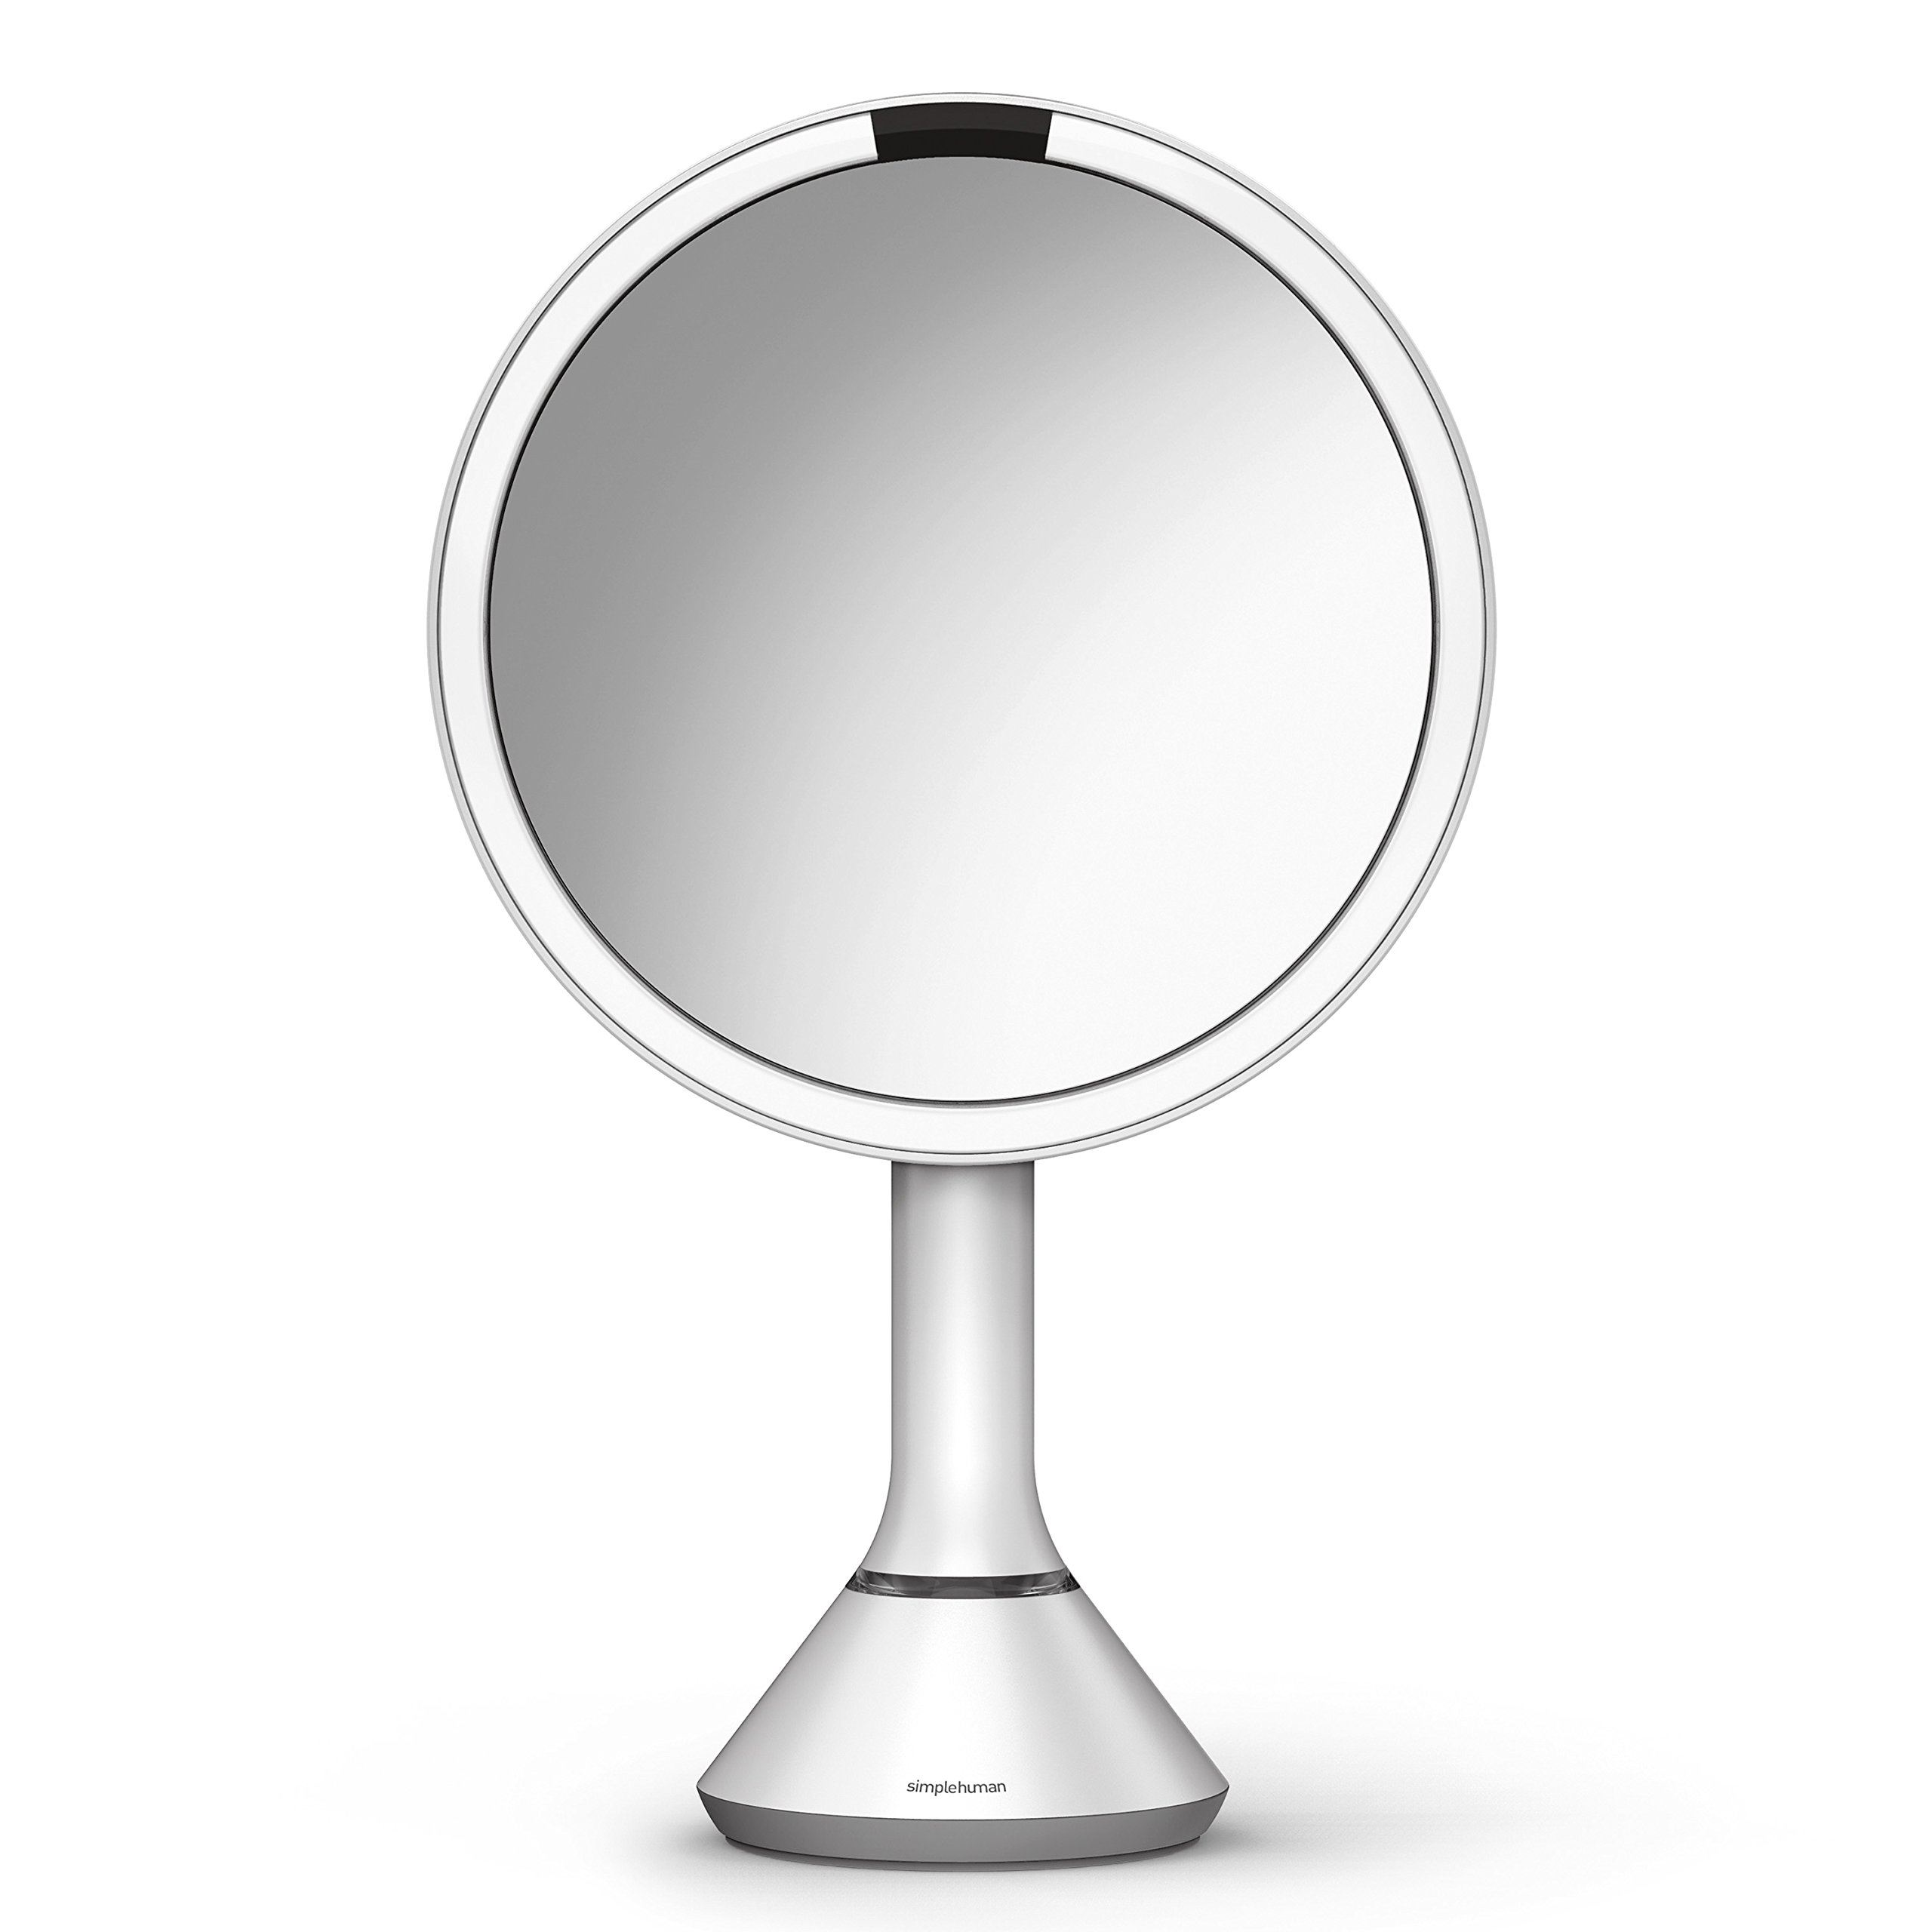 simplehuman Sensor Lighted Makeup Vanity Mirror, 8'' Round With Touch-Control Brightness, 5x Magnification, White Stainless Steel, Rechargeable And Cordless